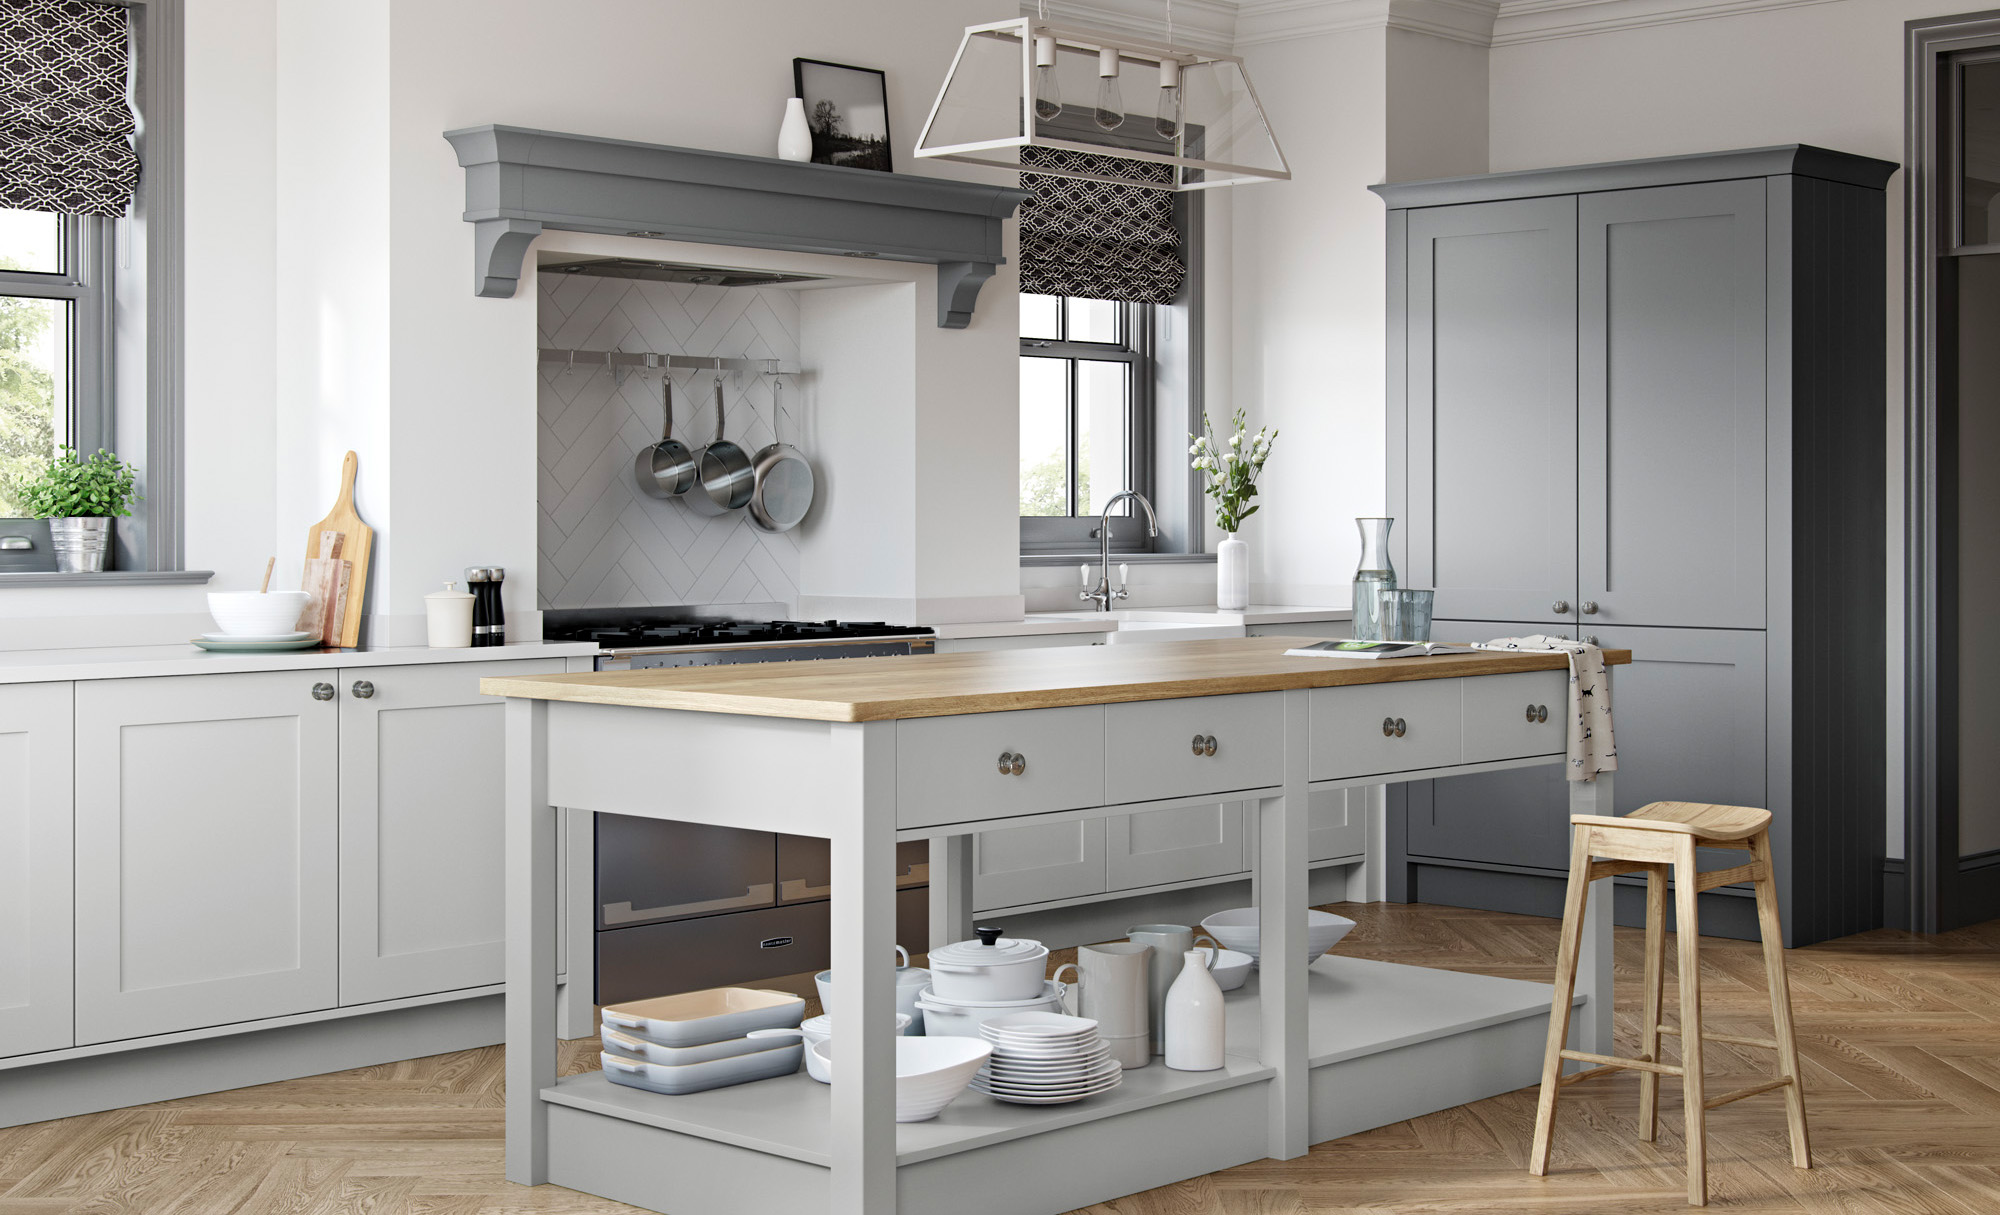 Classic Traditional Kitchen - Georgia Light Grey, Dust Grey Kitchen - Kitchen Design - Alan Kelly Kitchens - Waterford